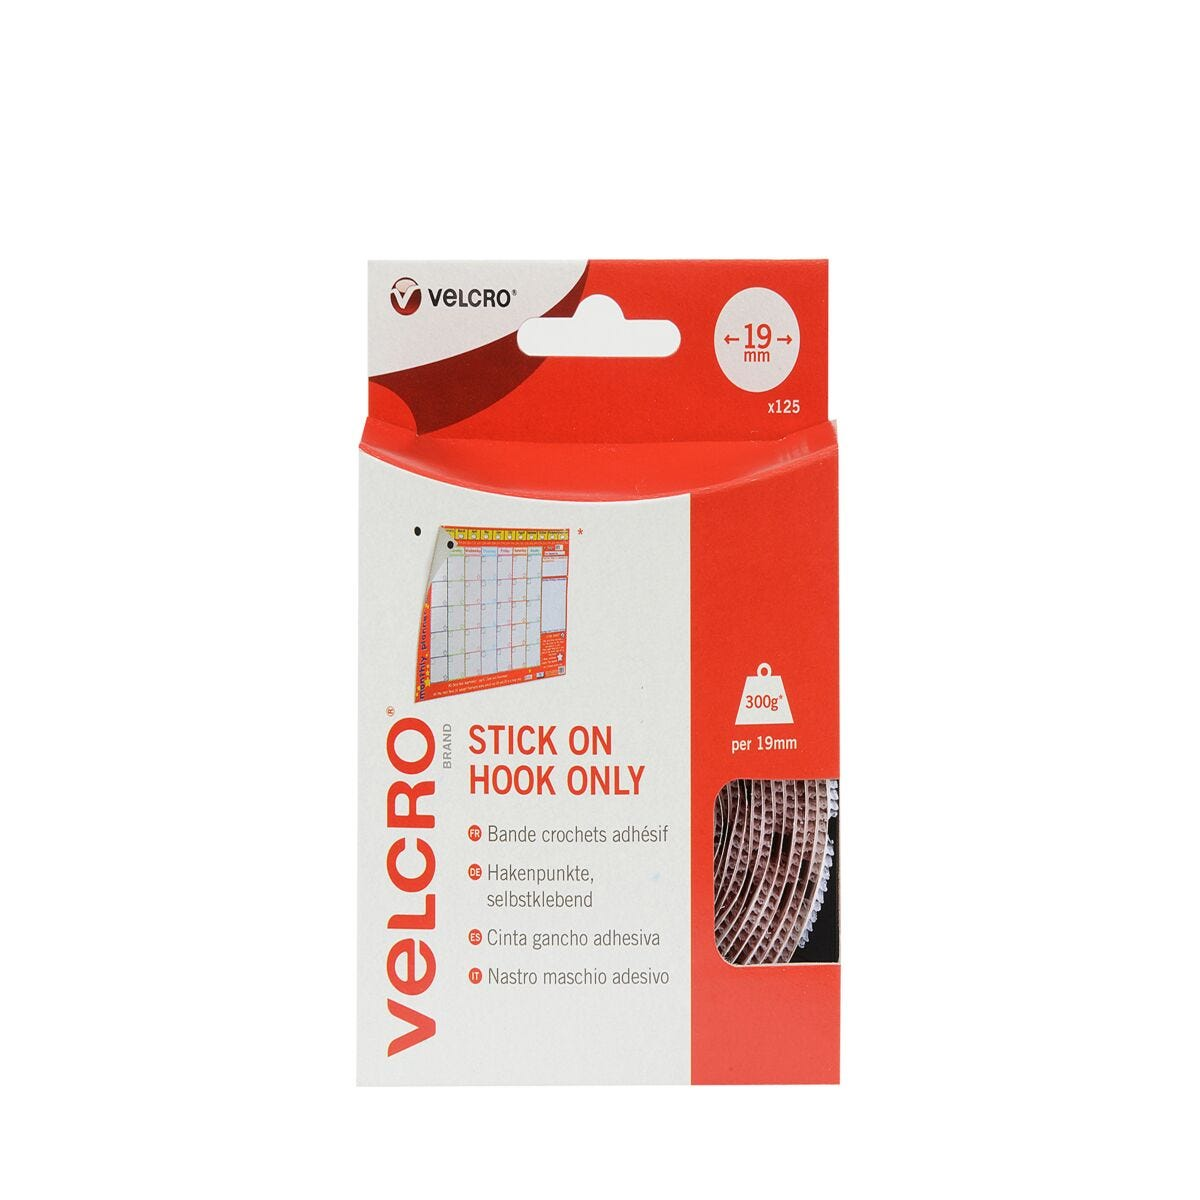 VELCRO Brand Stick On Coins Hook Only White